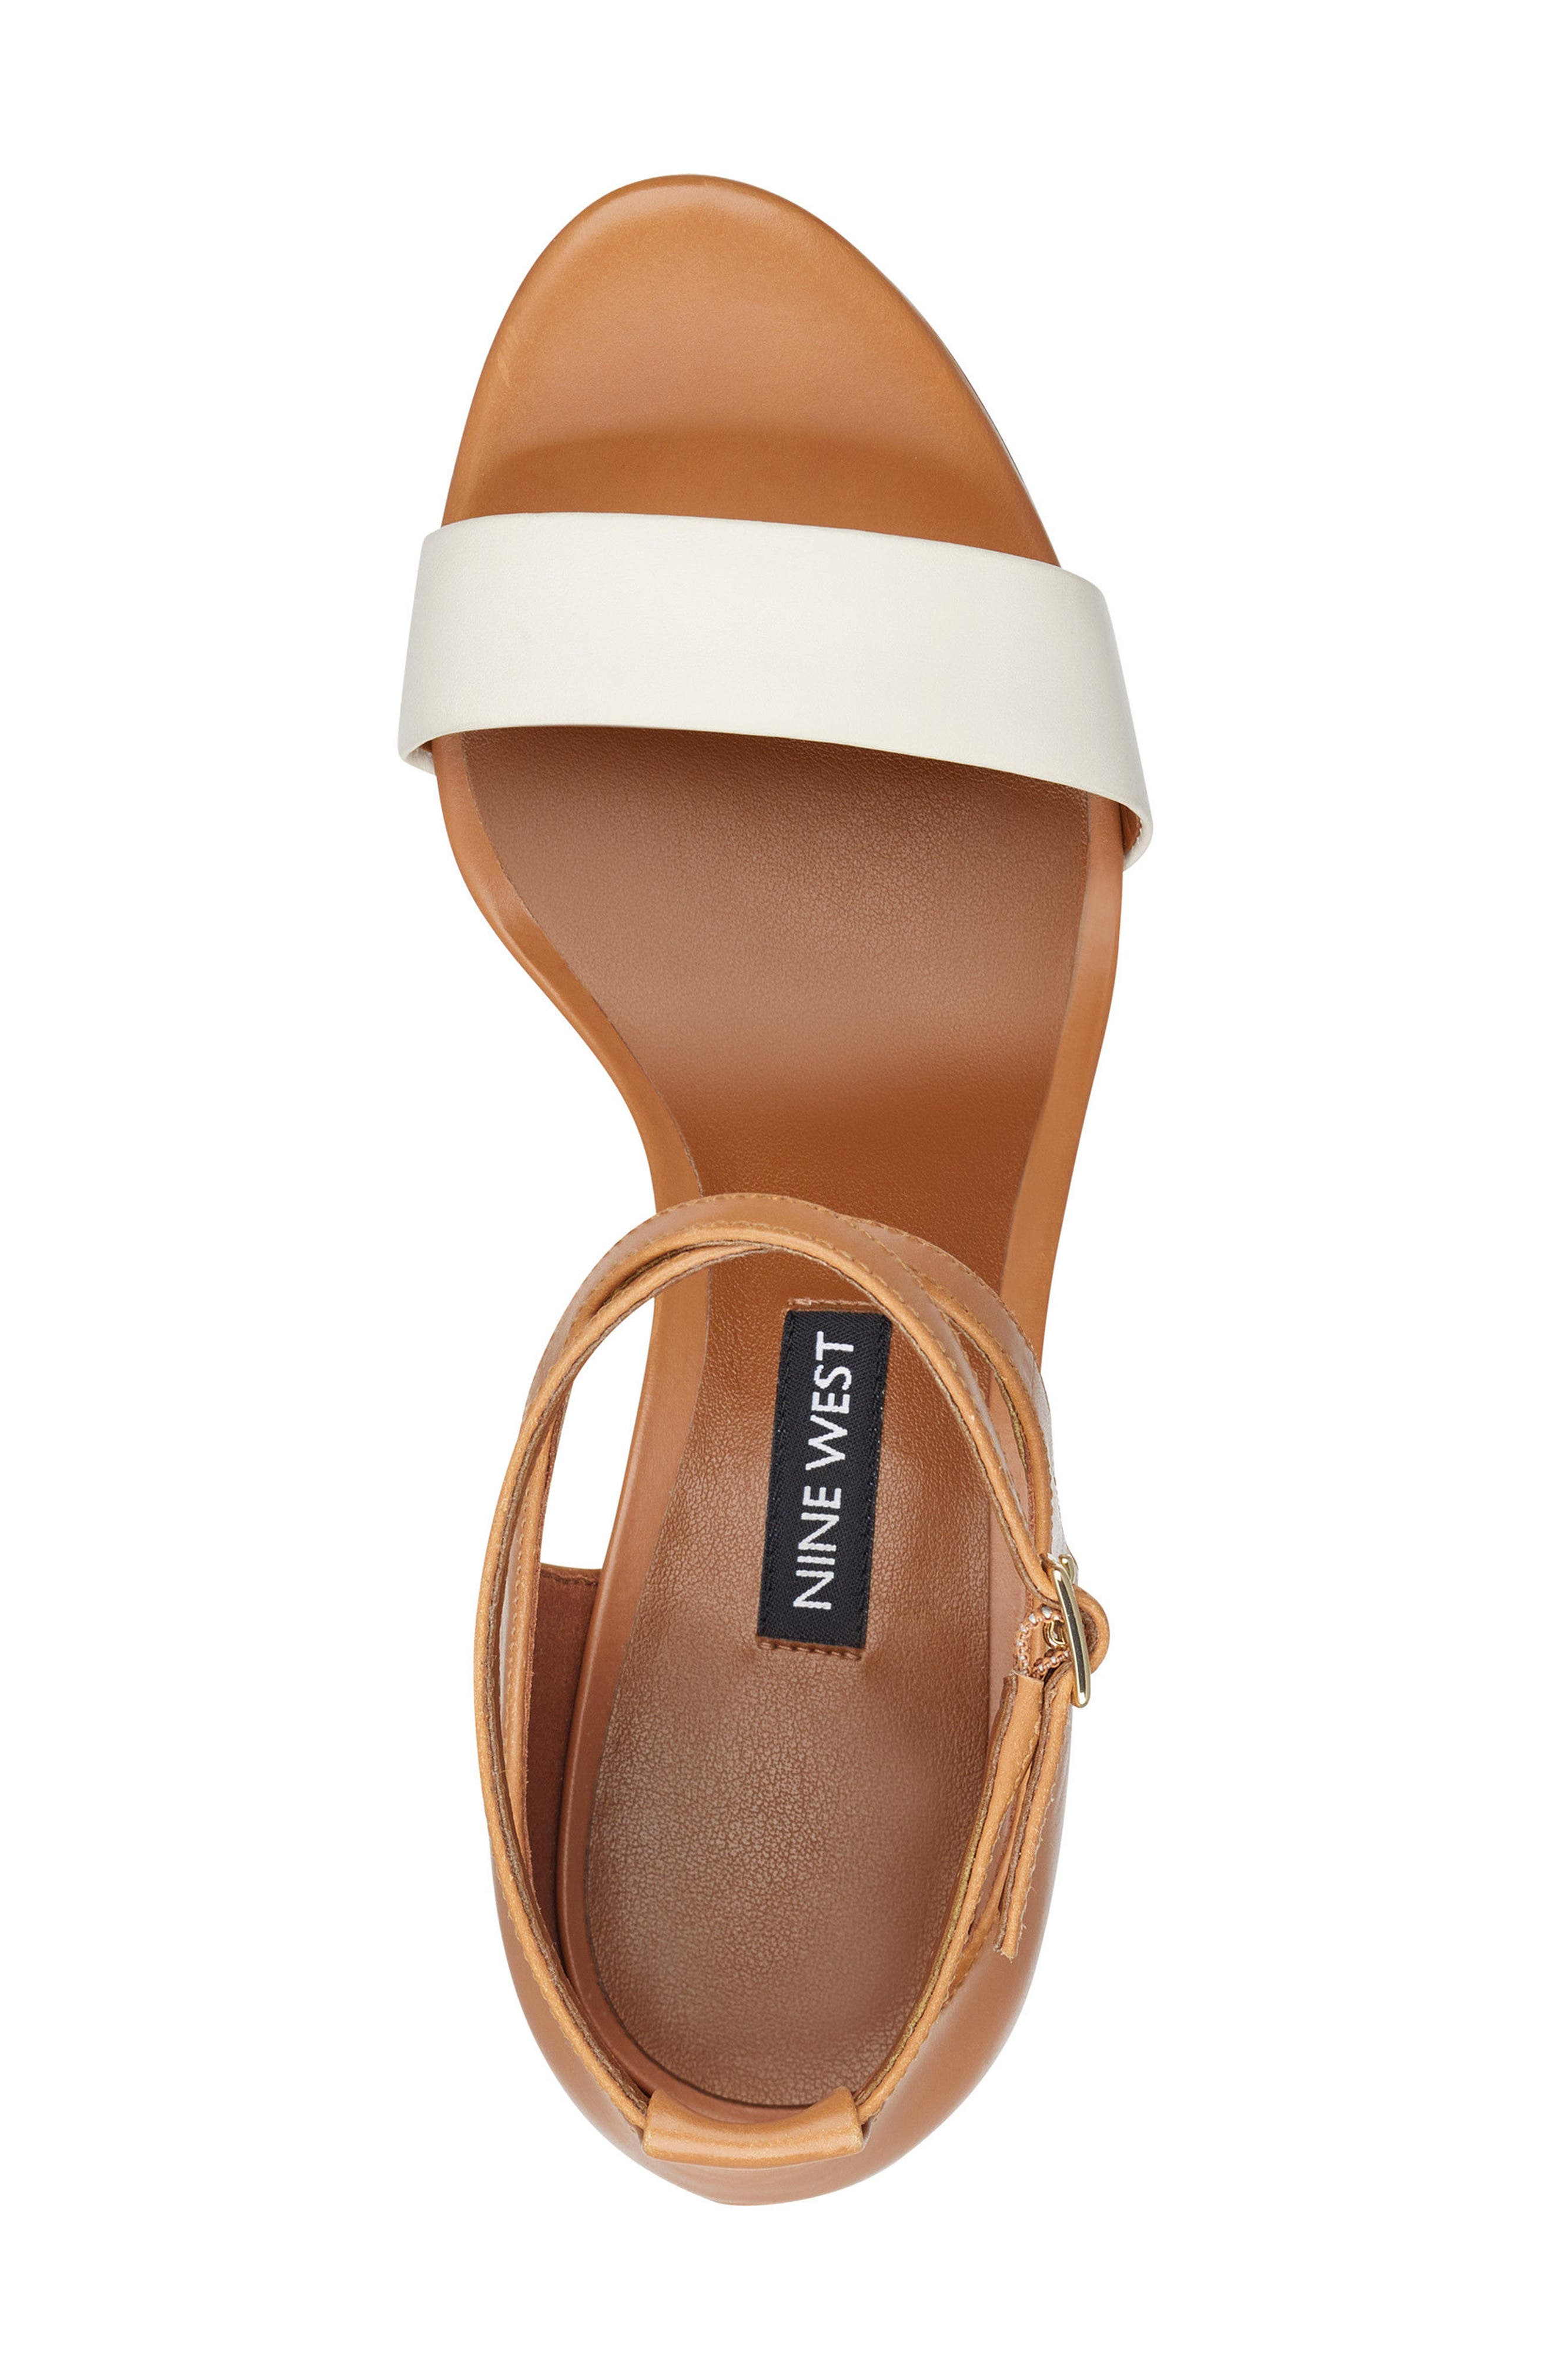 Nunzaya Ankle Strap Sandal,                             Alternate thumbnail 5, color,                             OFF WHITE/ NATURAL LEATHER